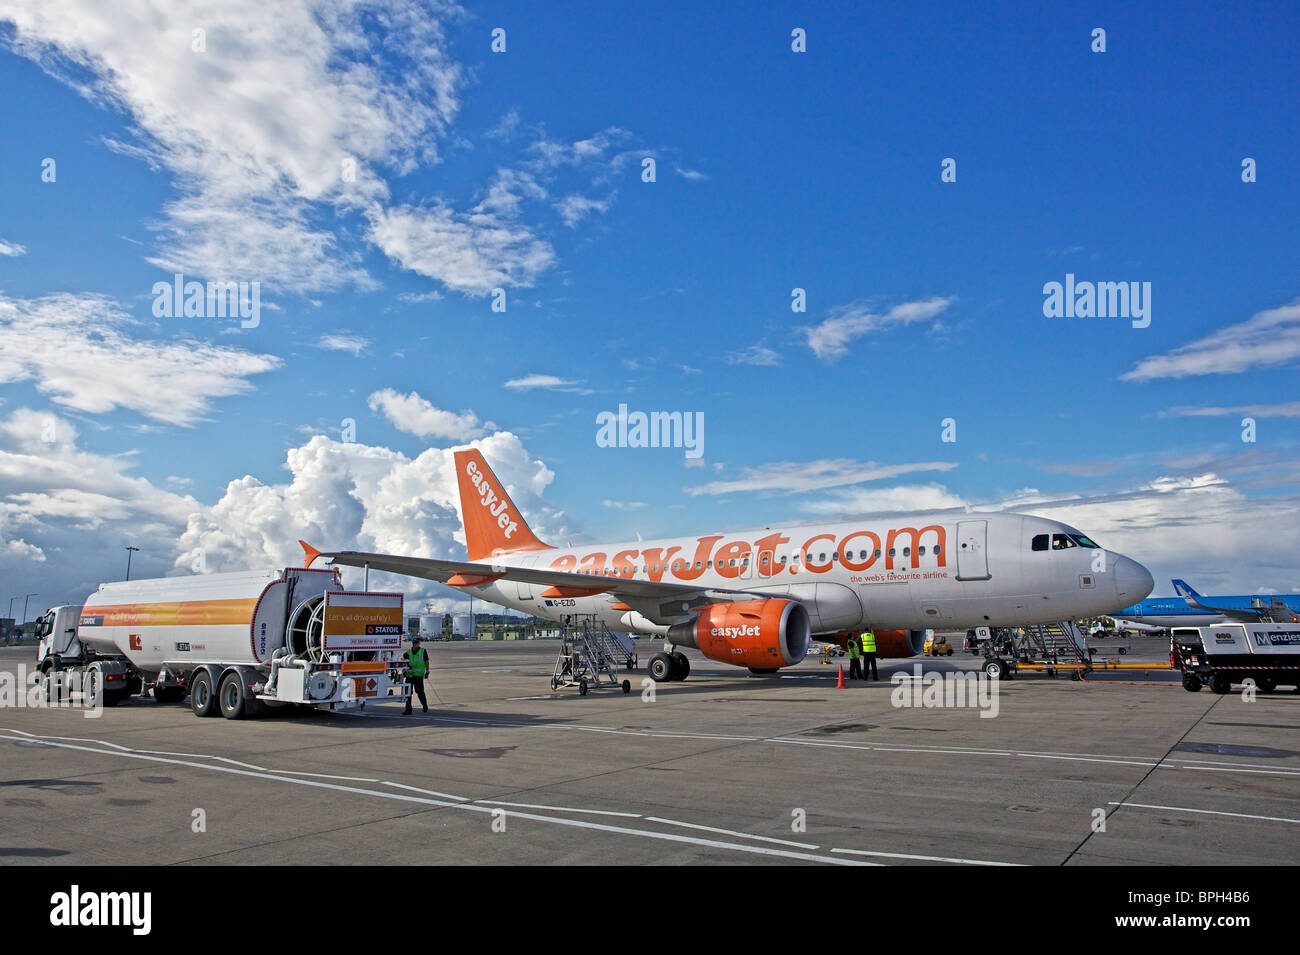 Easyjet plane refueling on the tarmac at Edinburgh airport, Scotland - Stock Image